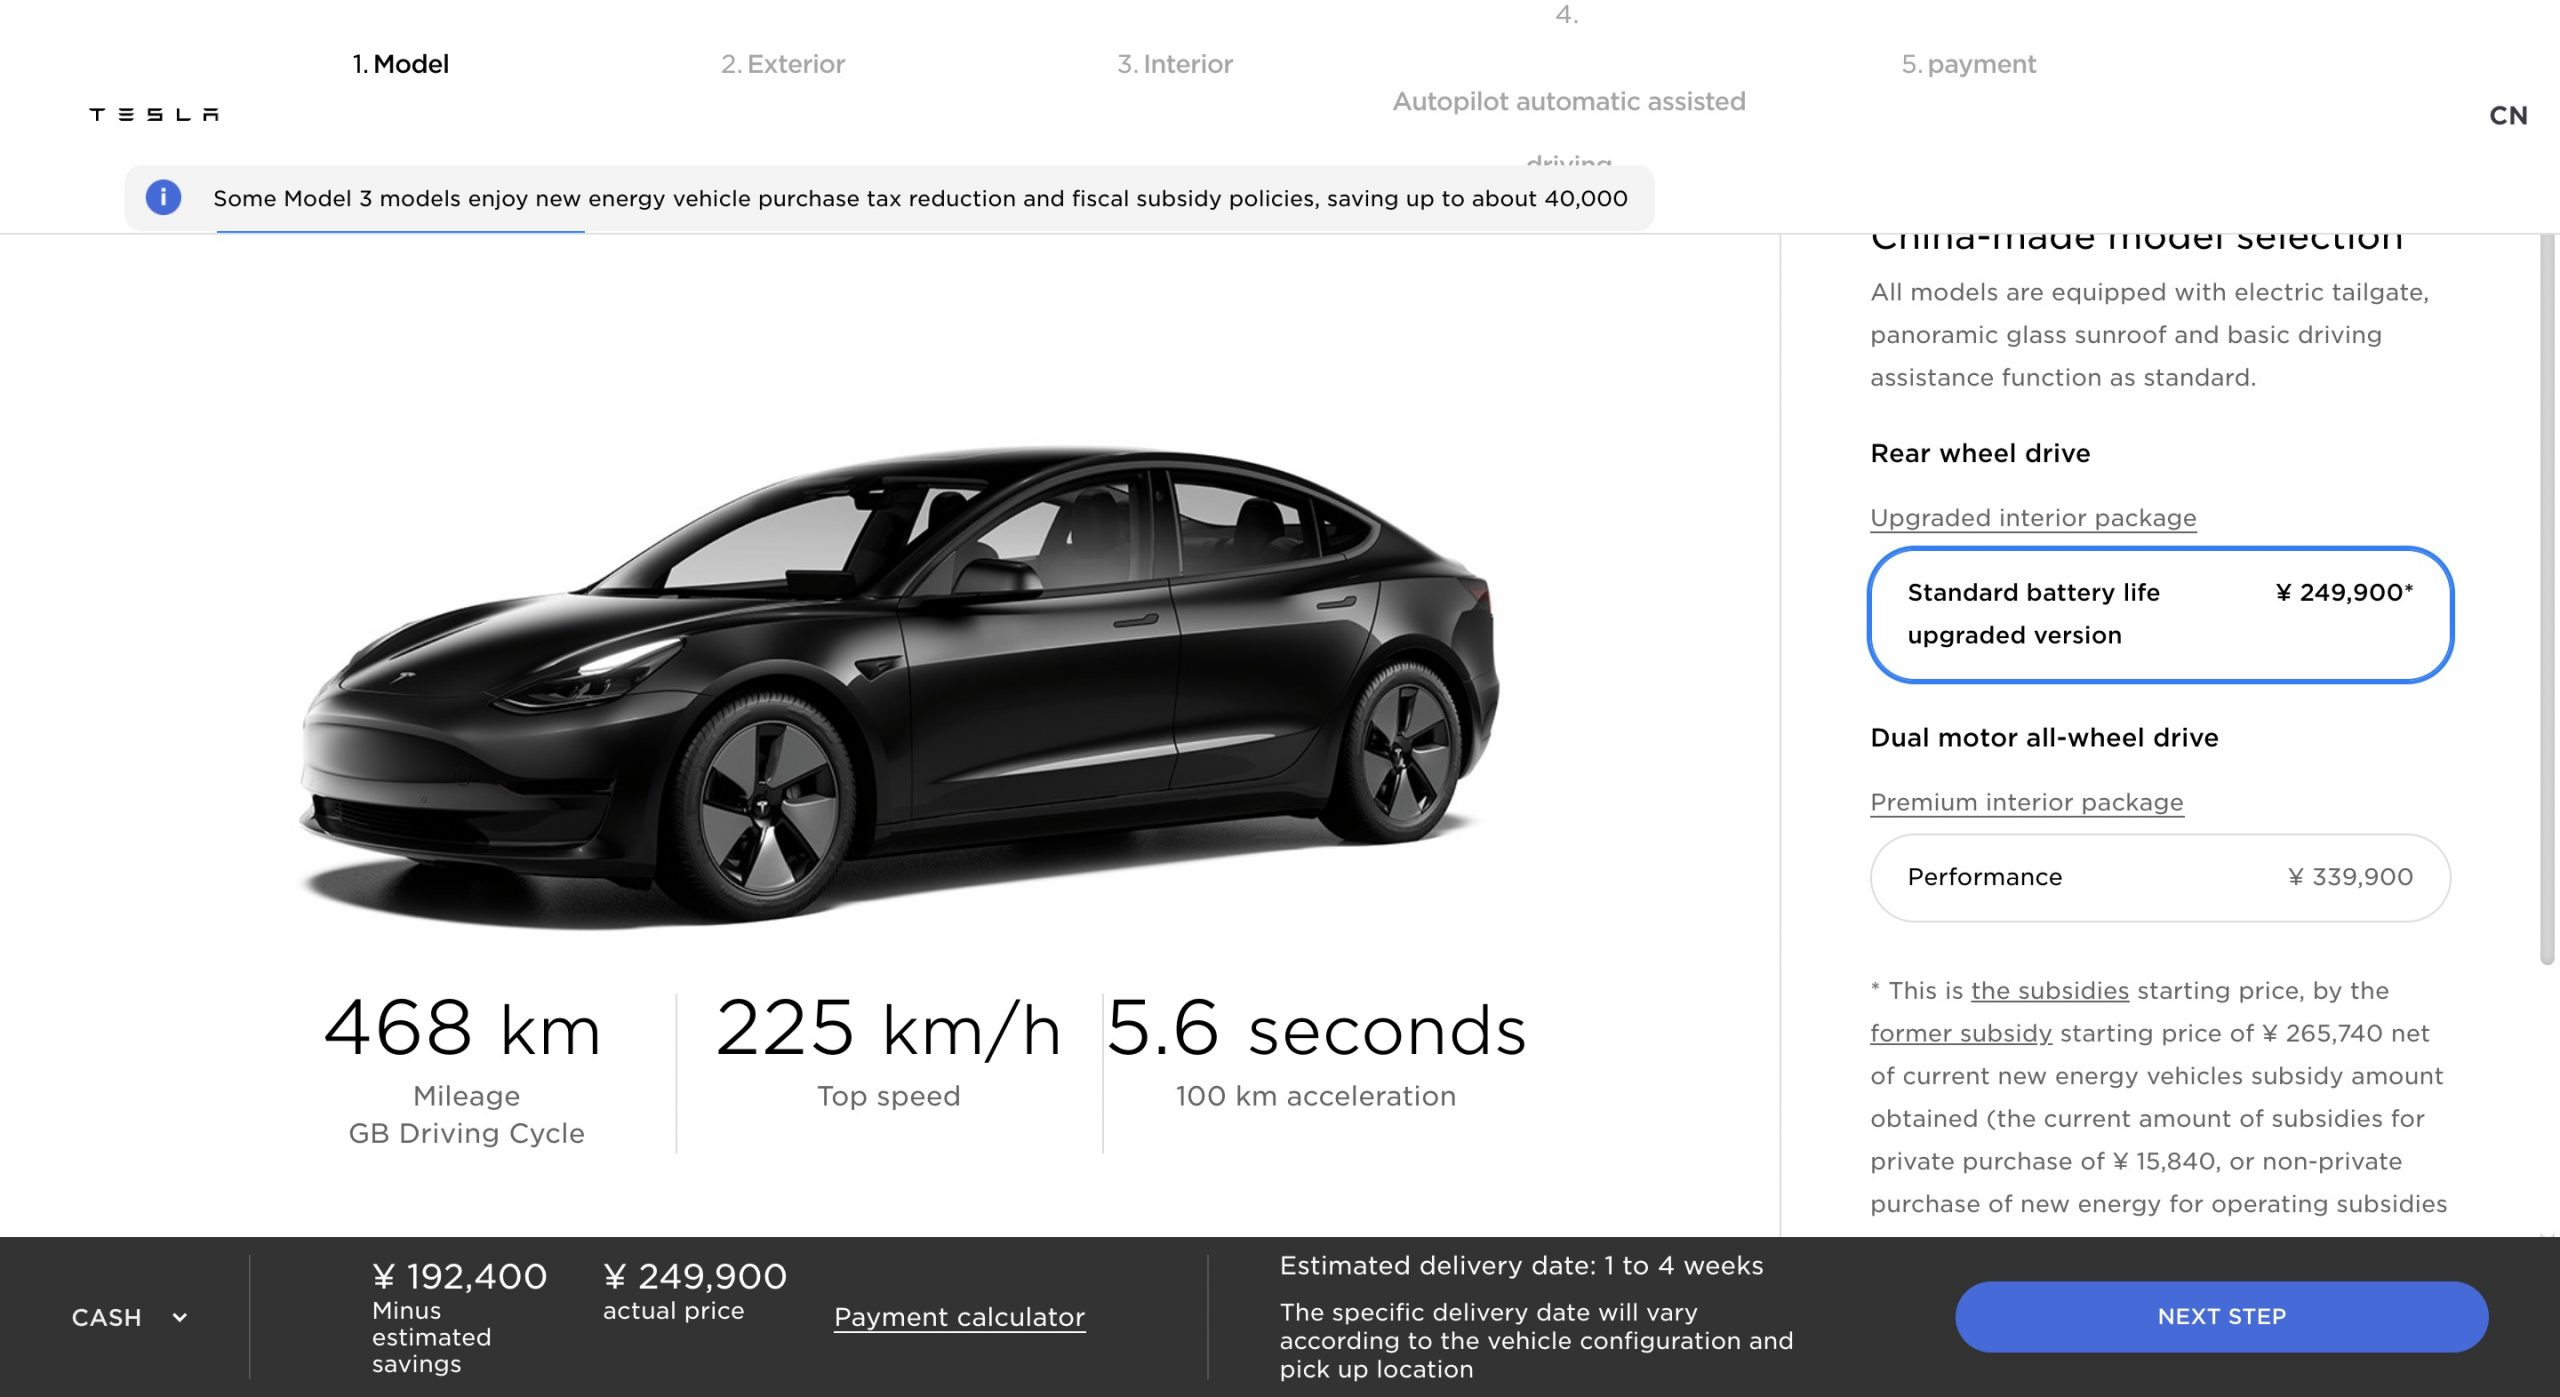 Tesla-China-Model-3-new-design-MIC-Model-Y-features